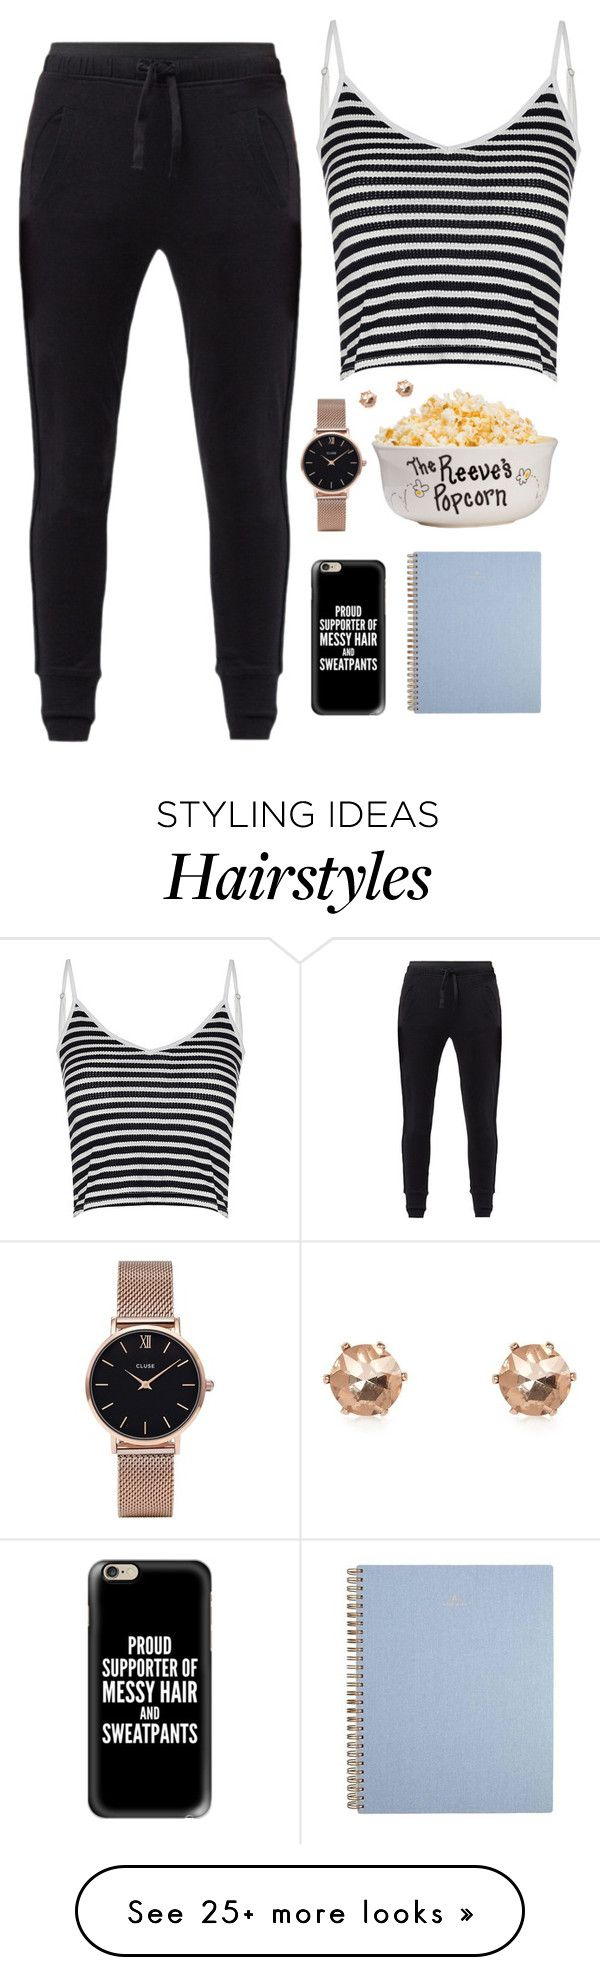 """""""Proud supporter of messy hair and sweatpants"""" by dipske on Polyvore featuring MANGO, Casetify, Glamorous, CLUSE and River Island"""